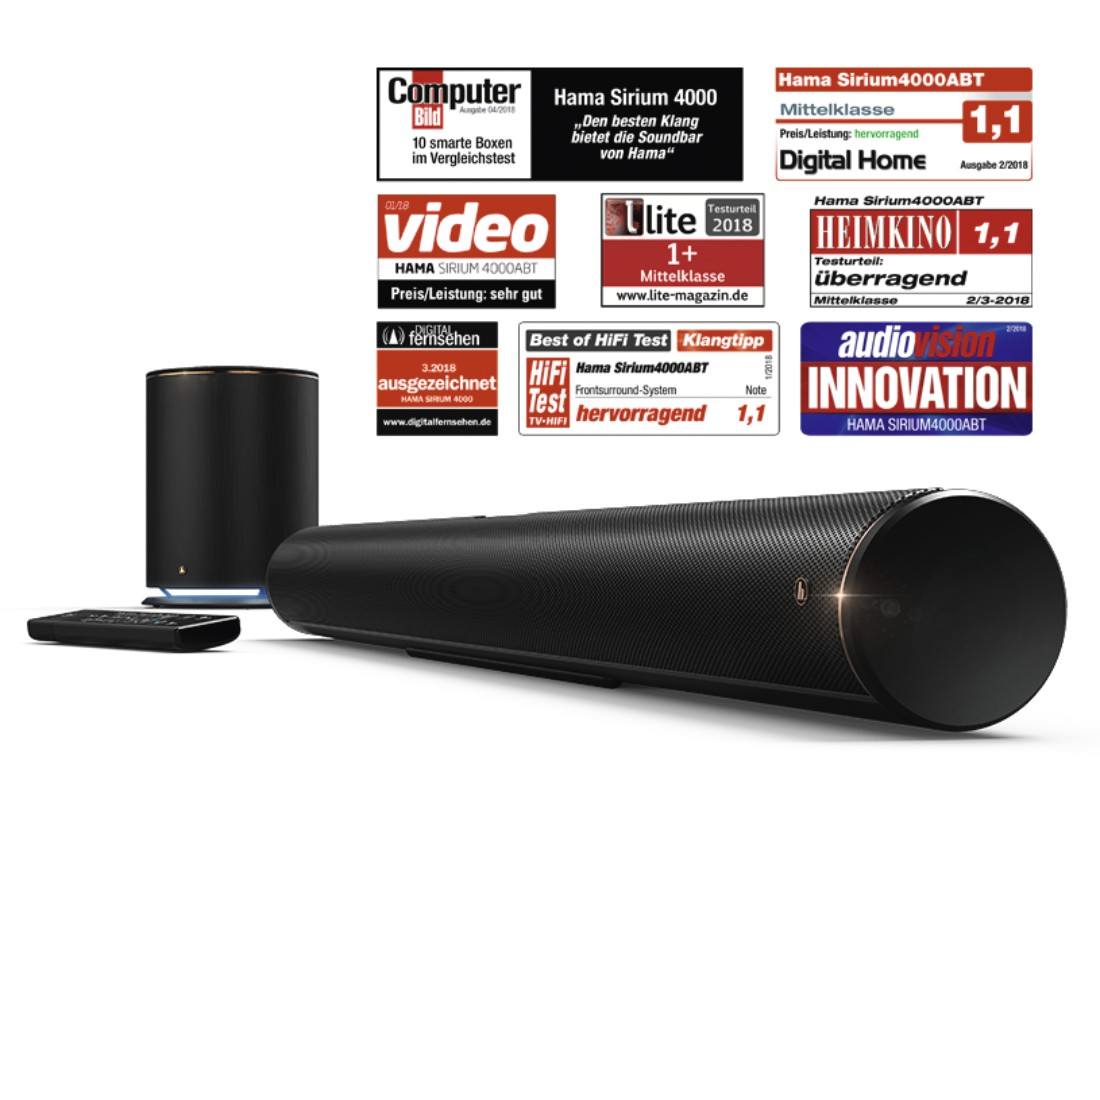 awx7 Druckfähige Anwendung 7 - Hama, Smart-TV-Soundbar 2.1 SIRIUM4000ABT, Wireless Subwoofer/Alexa/Bluetooth